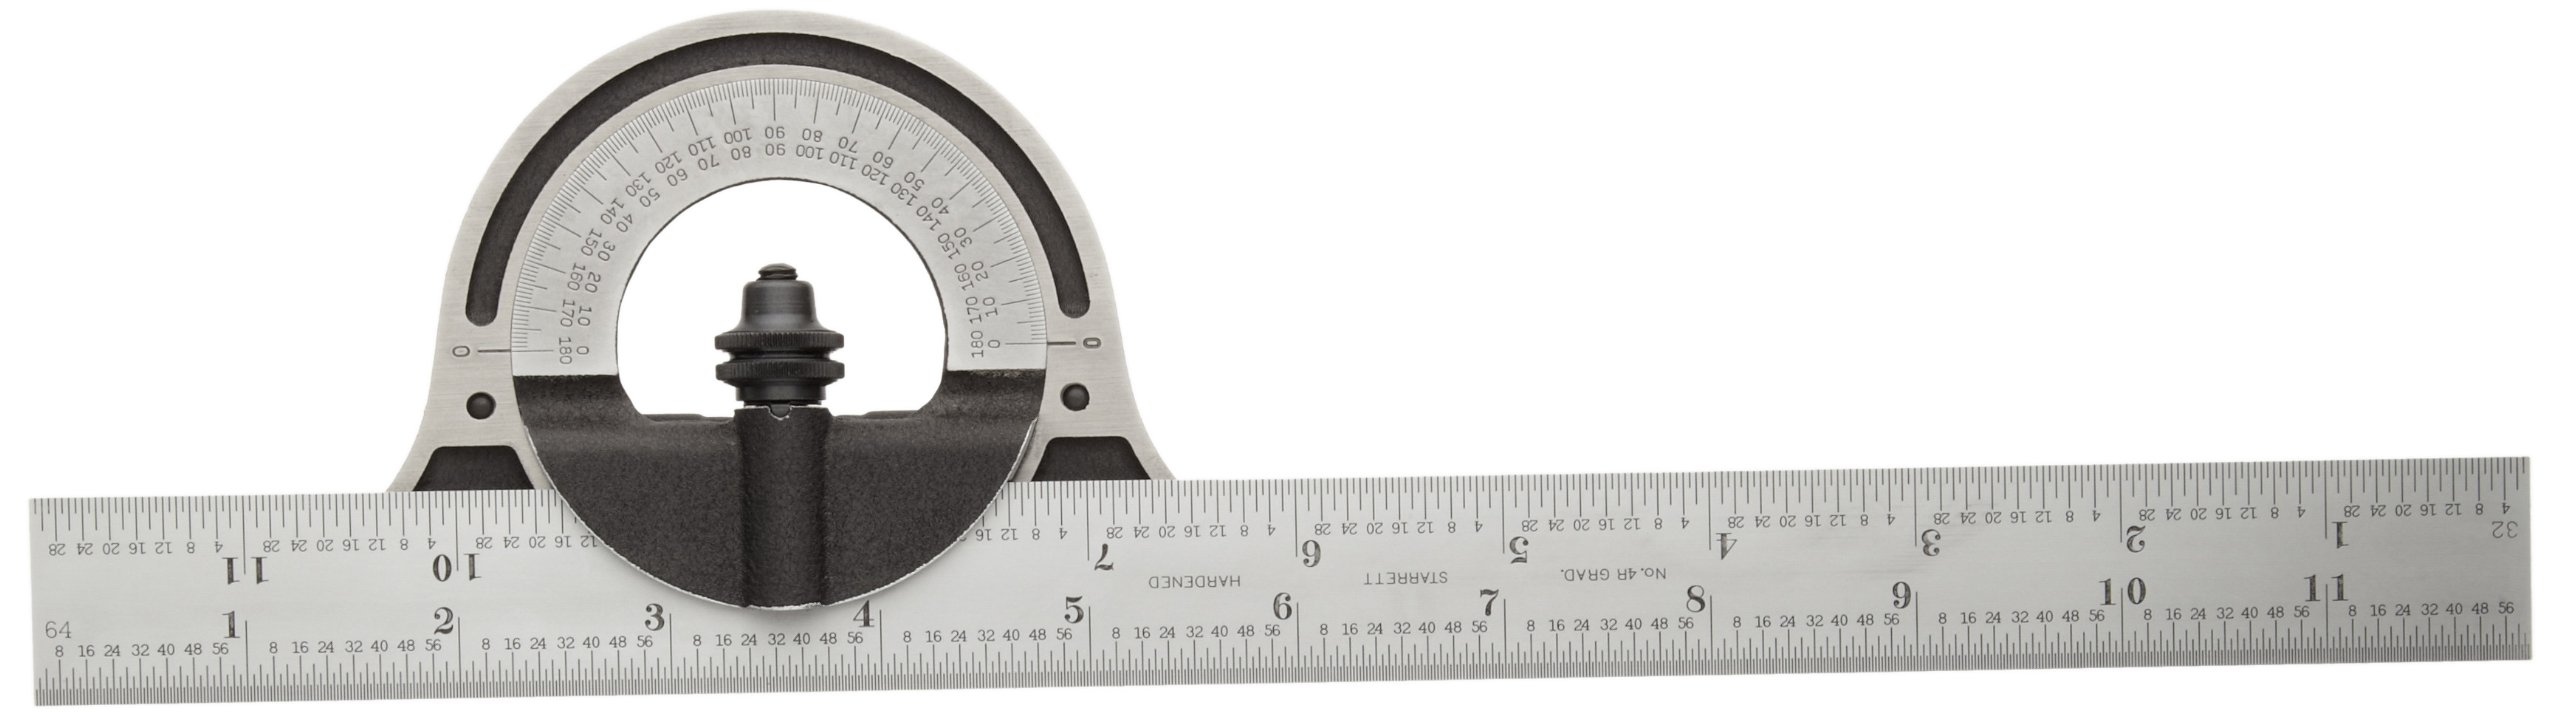 Starrett C12-12-4R Non-Reversible Bevel Protractor With Black Wrinkle Finish, 4R Graduation, 0-180 Degree, 12'' Size